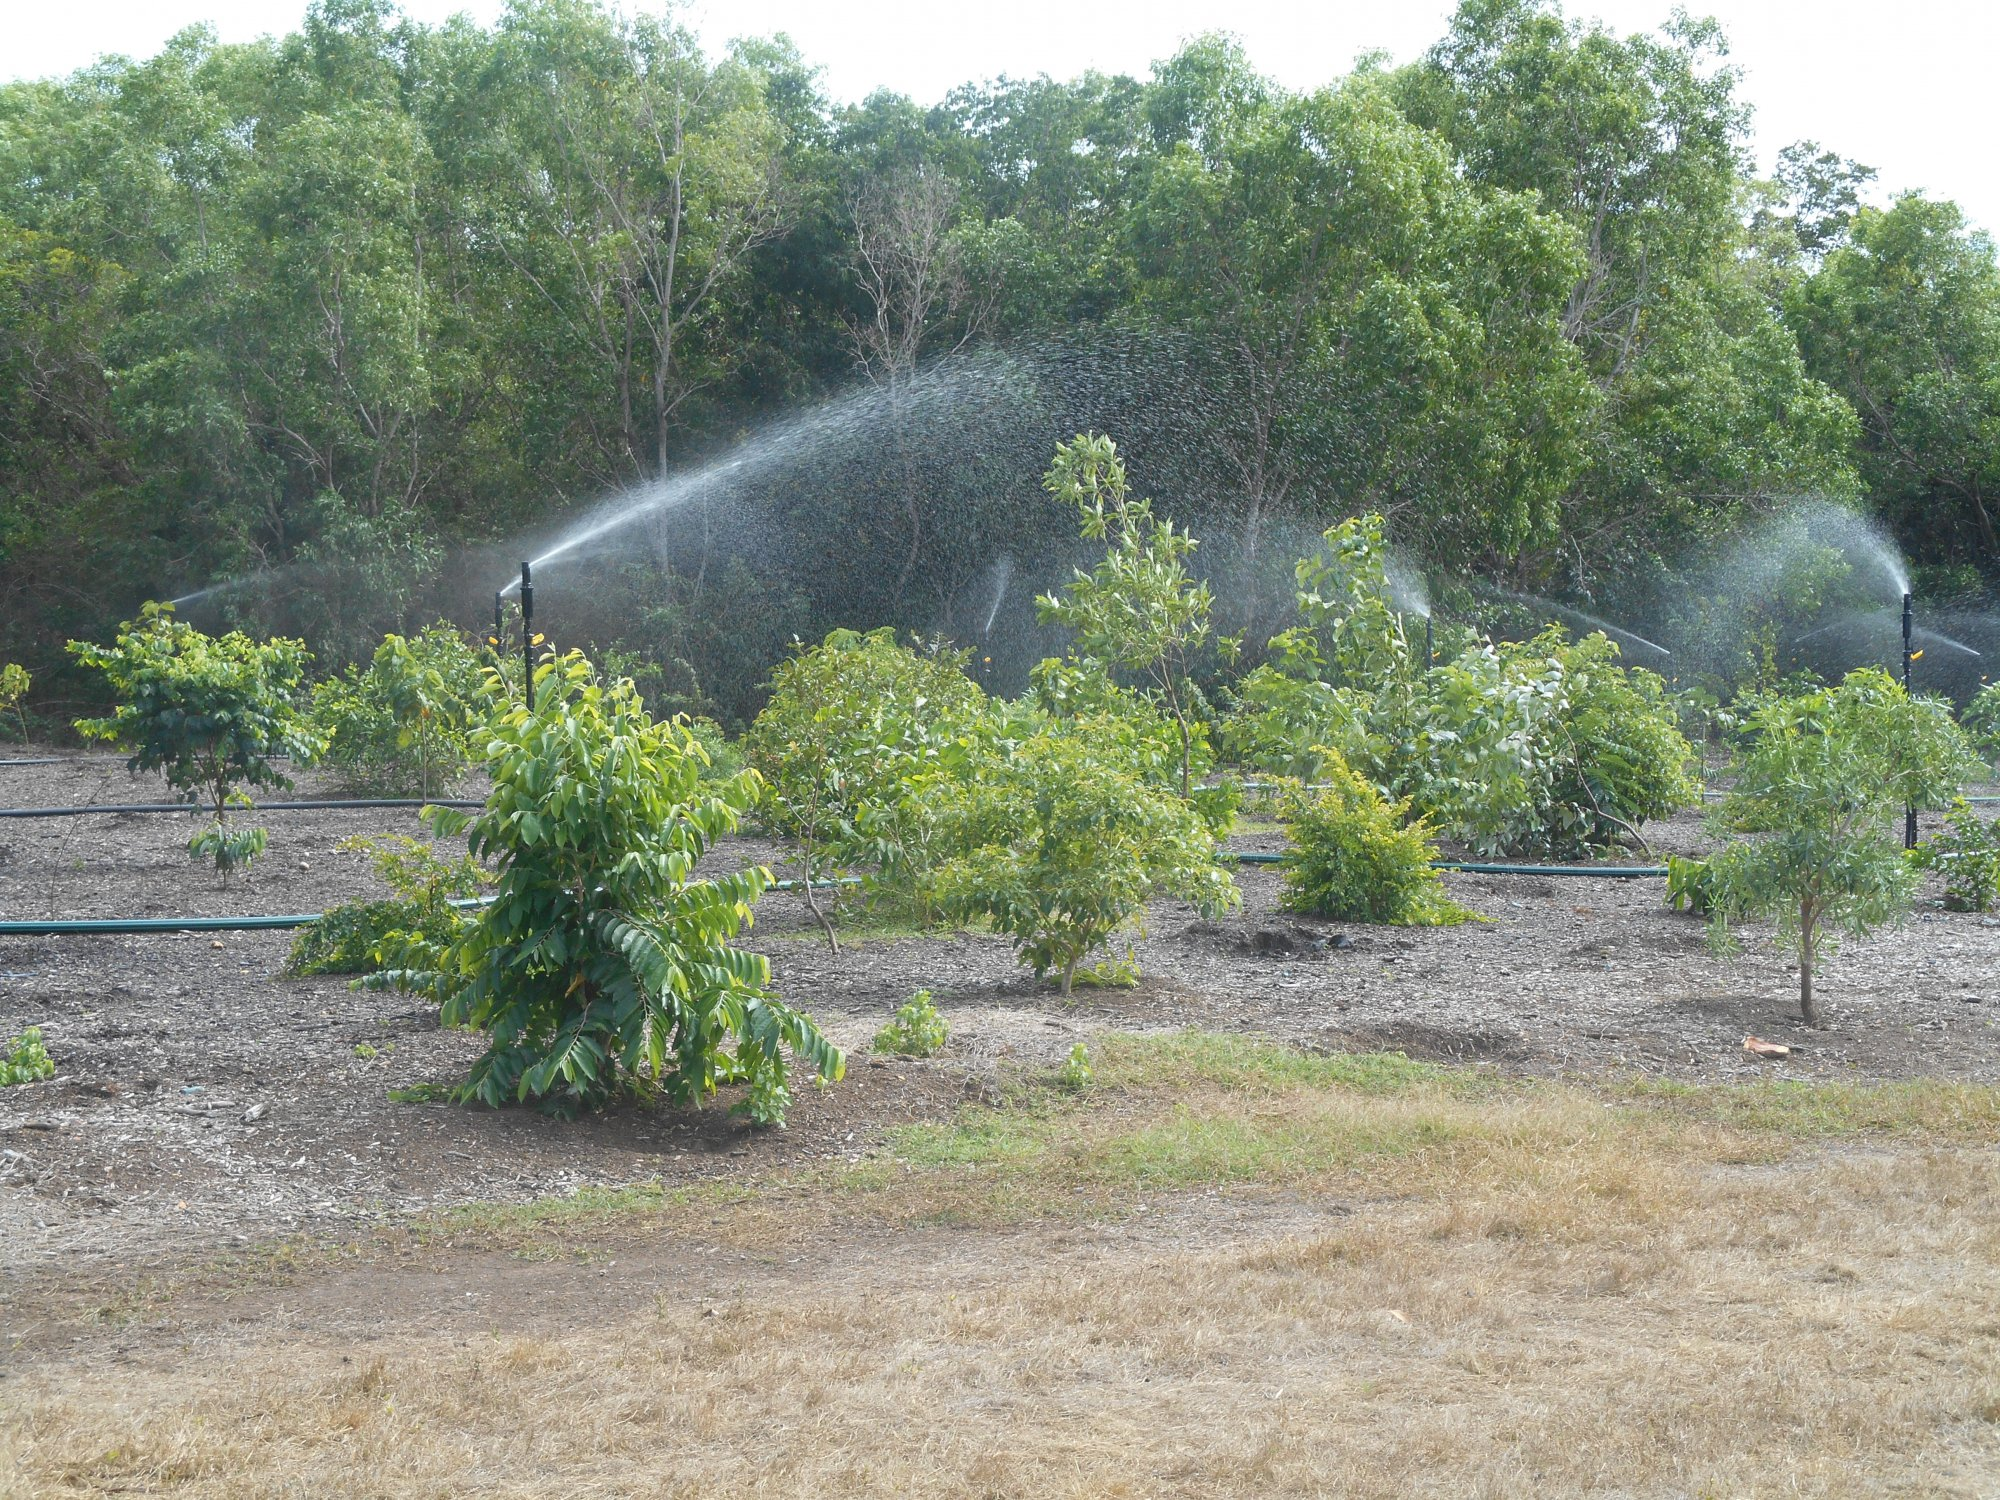 Stage 3 vegitation maturing, revegitation of monsoon rainforest at East Point Reserve